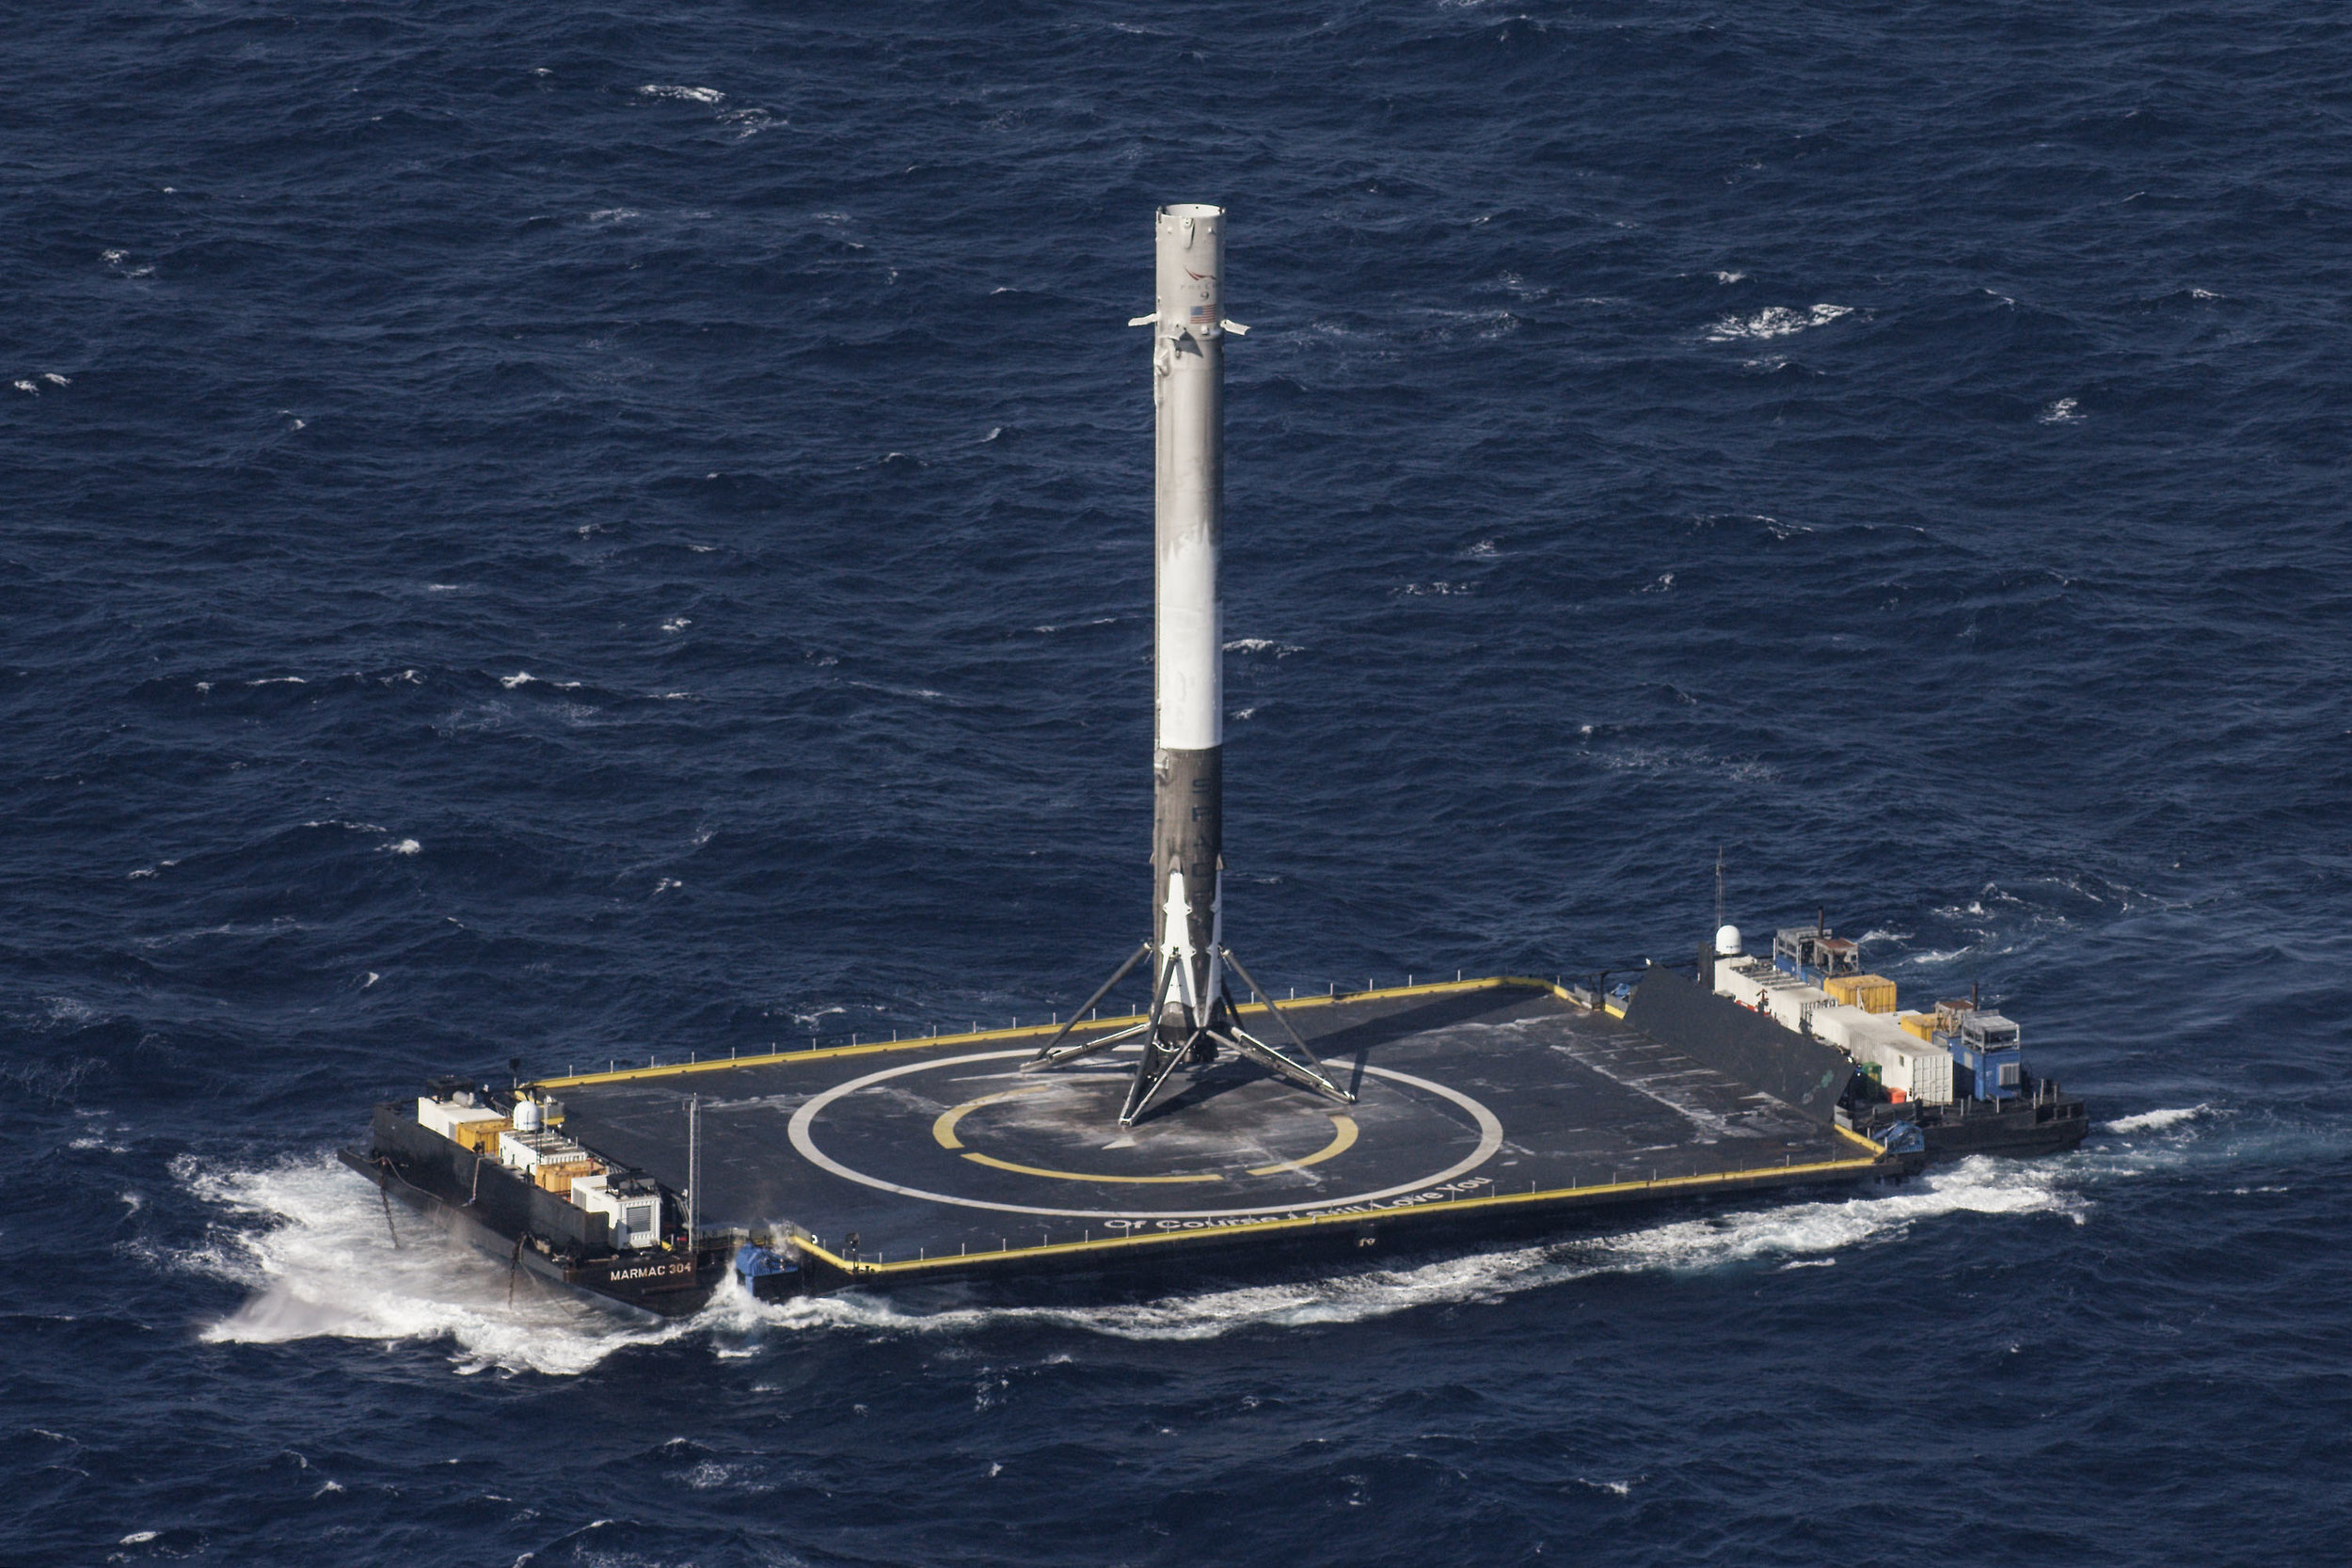 Image from SpaceX.